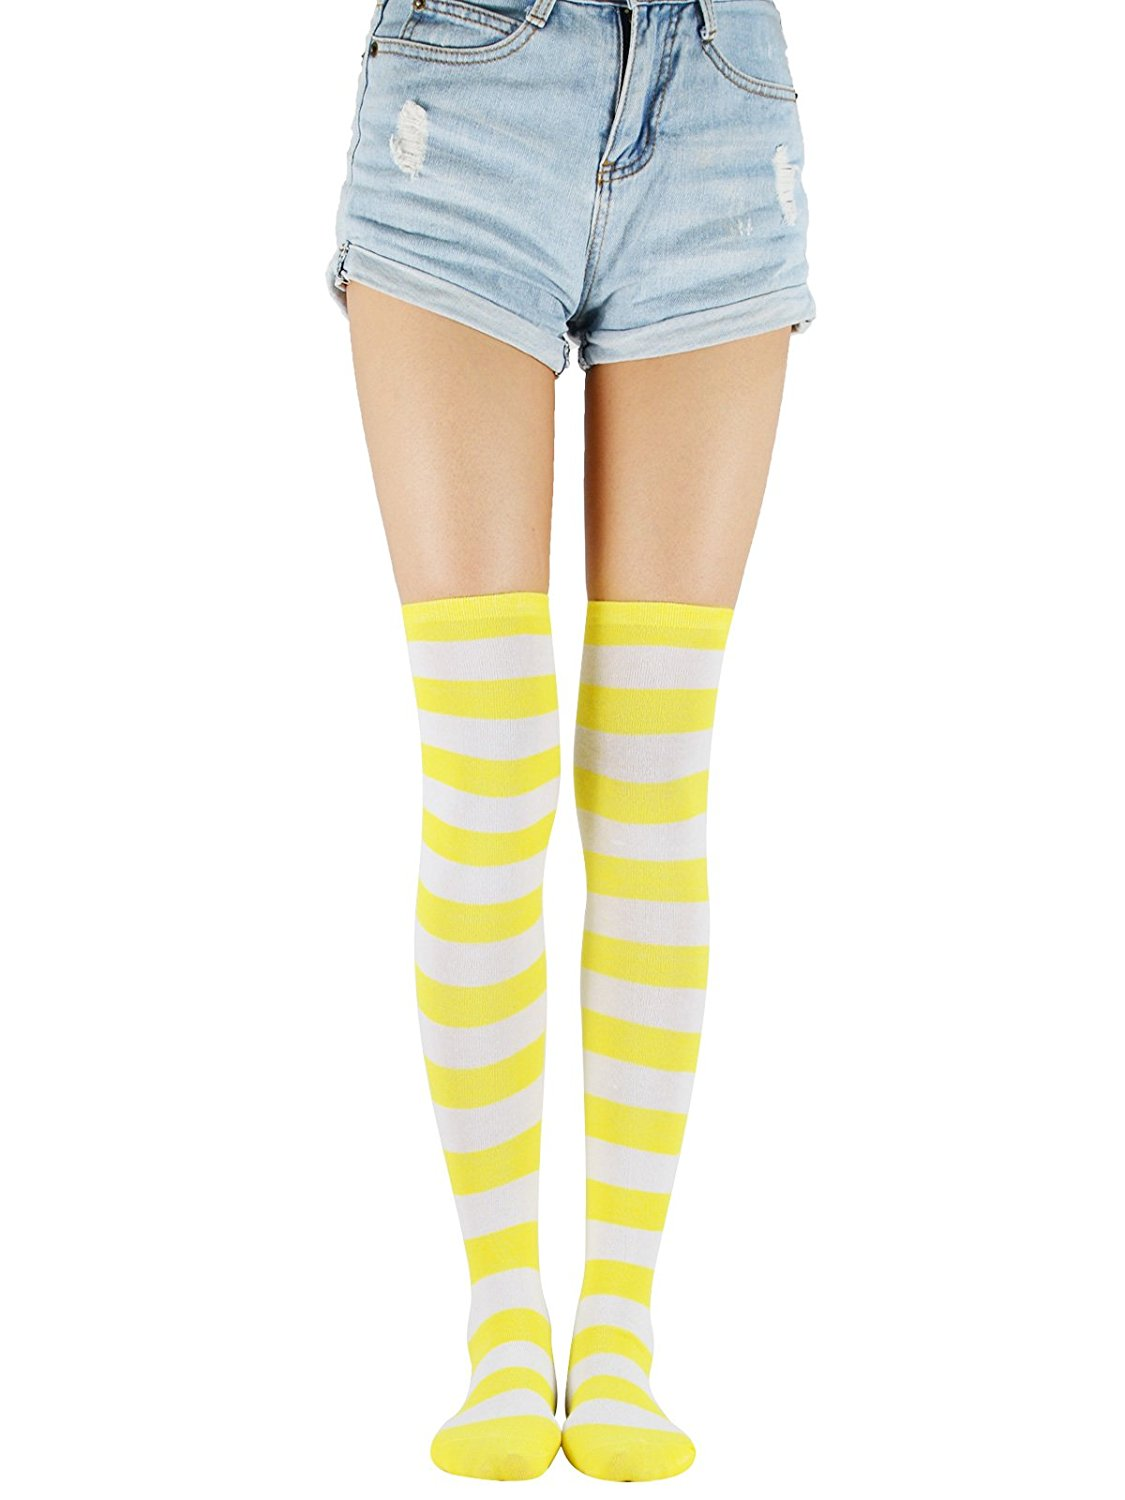 b51bae5b745 Over Knee Long Tube Socks Casual Striped Thigh High Tights Athletic  Stockings Stretchy One Pair Skirt